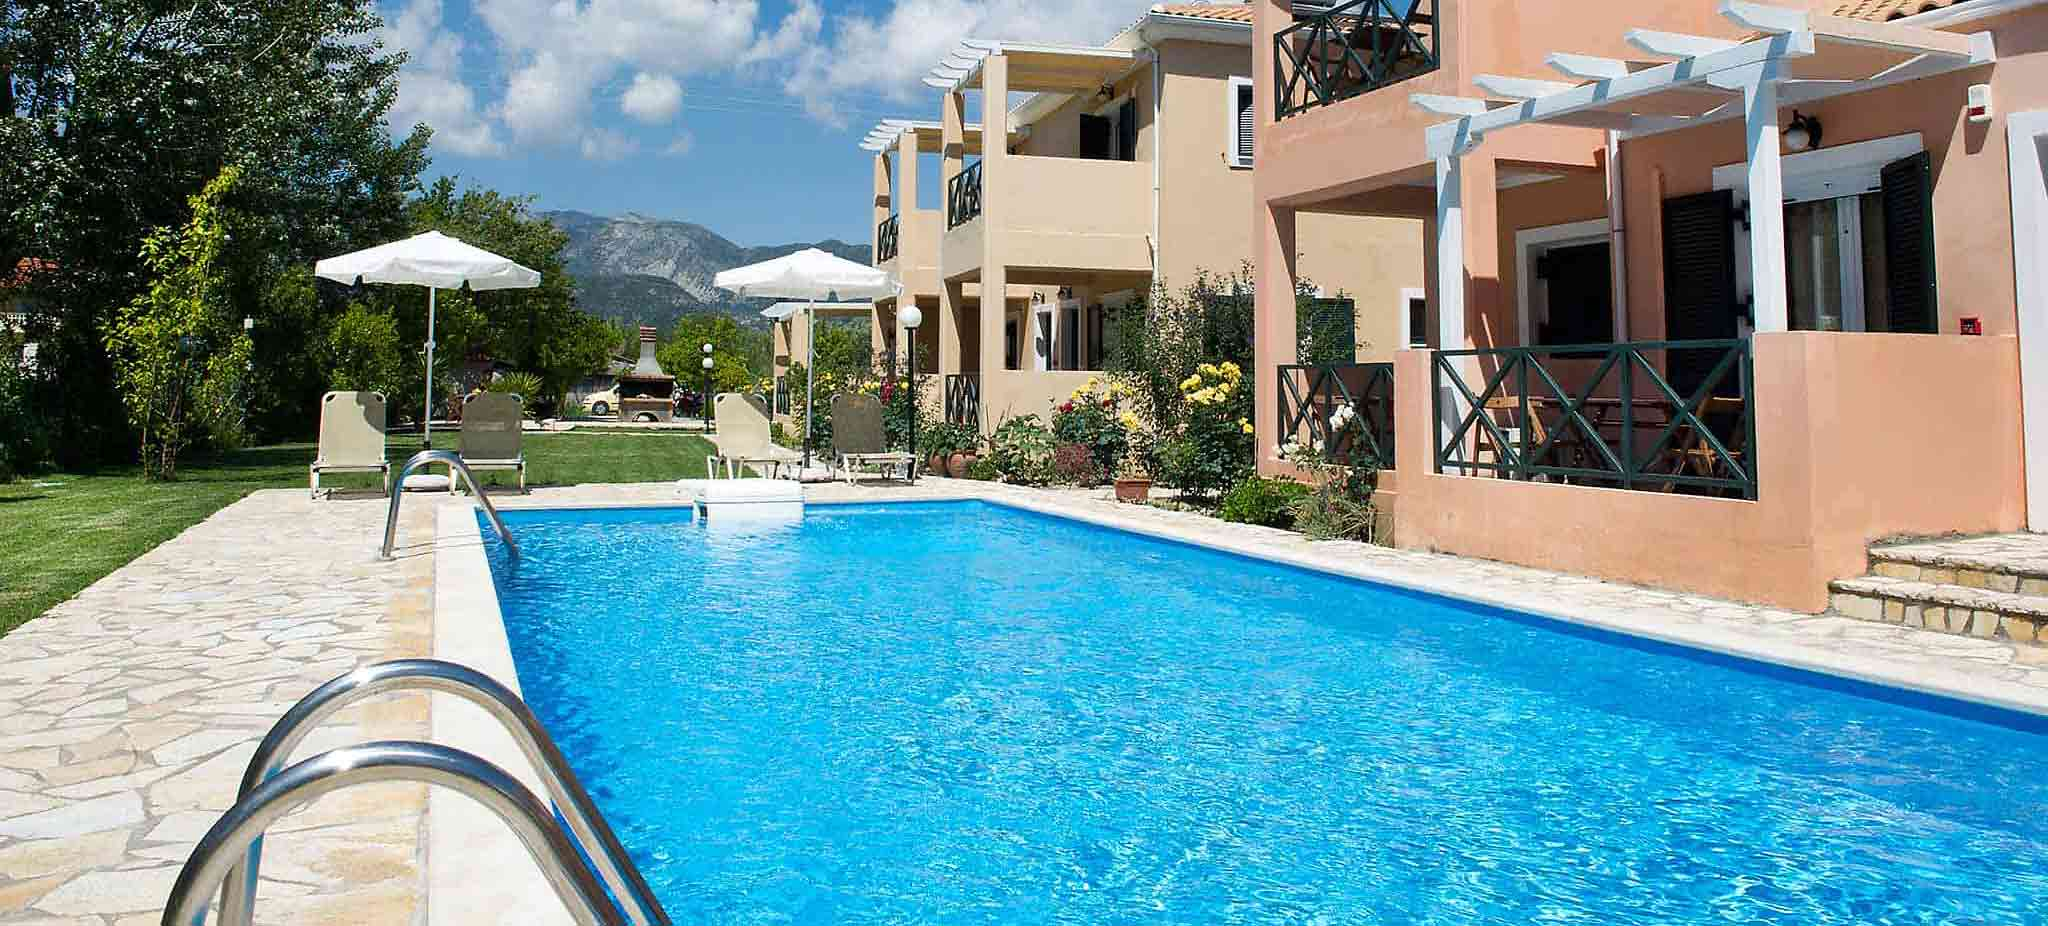 heliotropia houses - the beautiful outdoor pool to use during the day as well as in the evening.